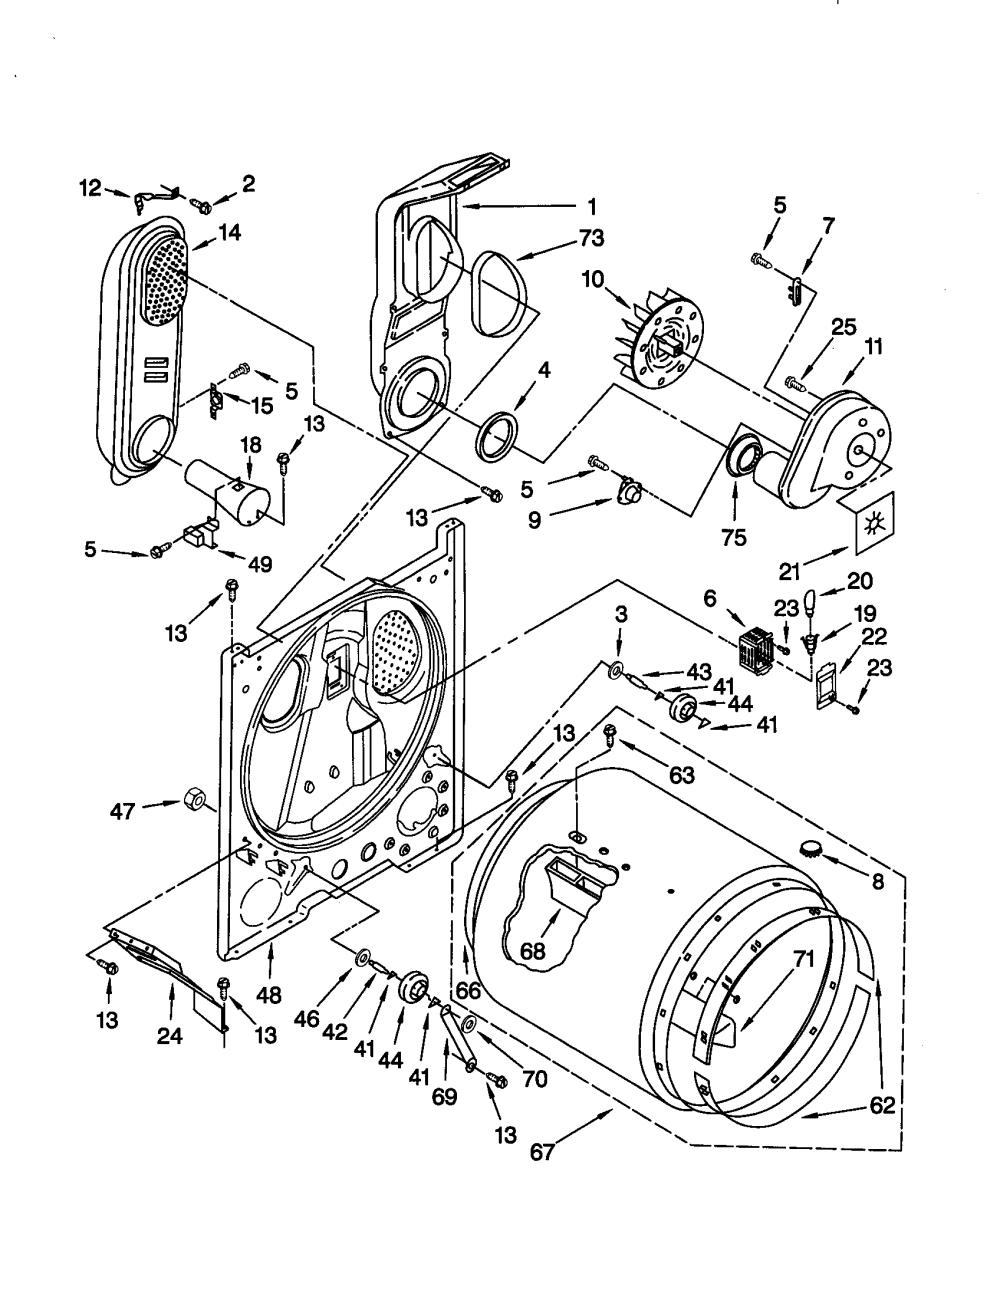 medium resolution of whirlpool dryer wiring diagram diagram stream whirlpool gas dryer wiring diagram whirlpool gas dryer parts model